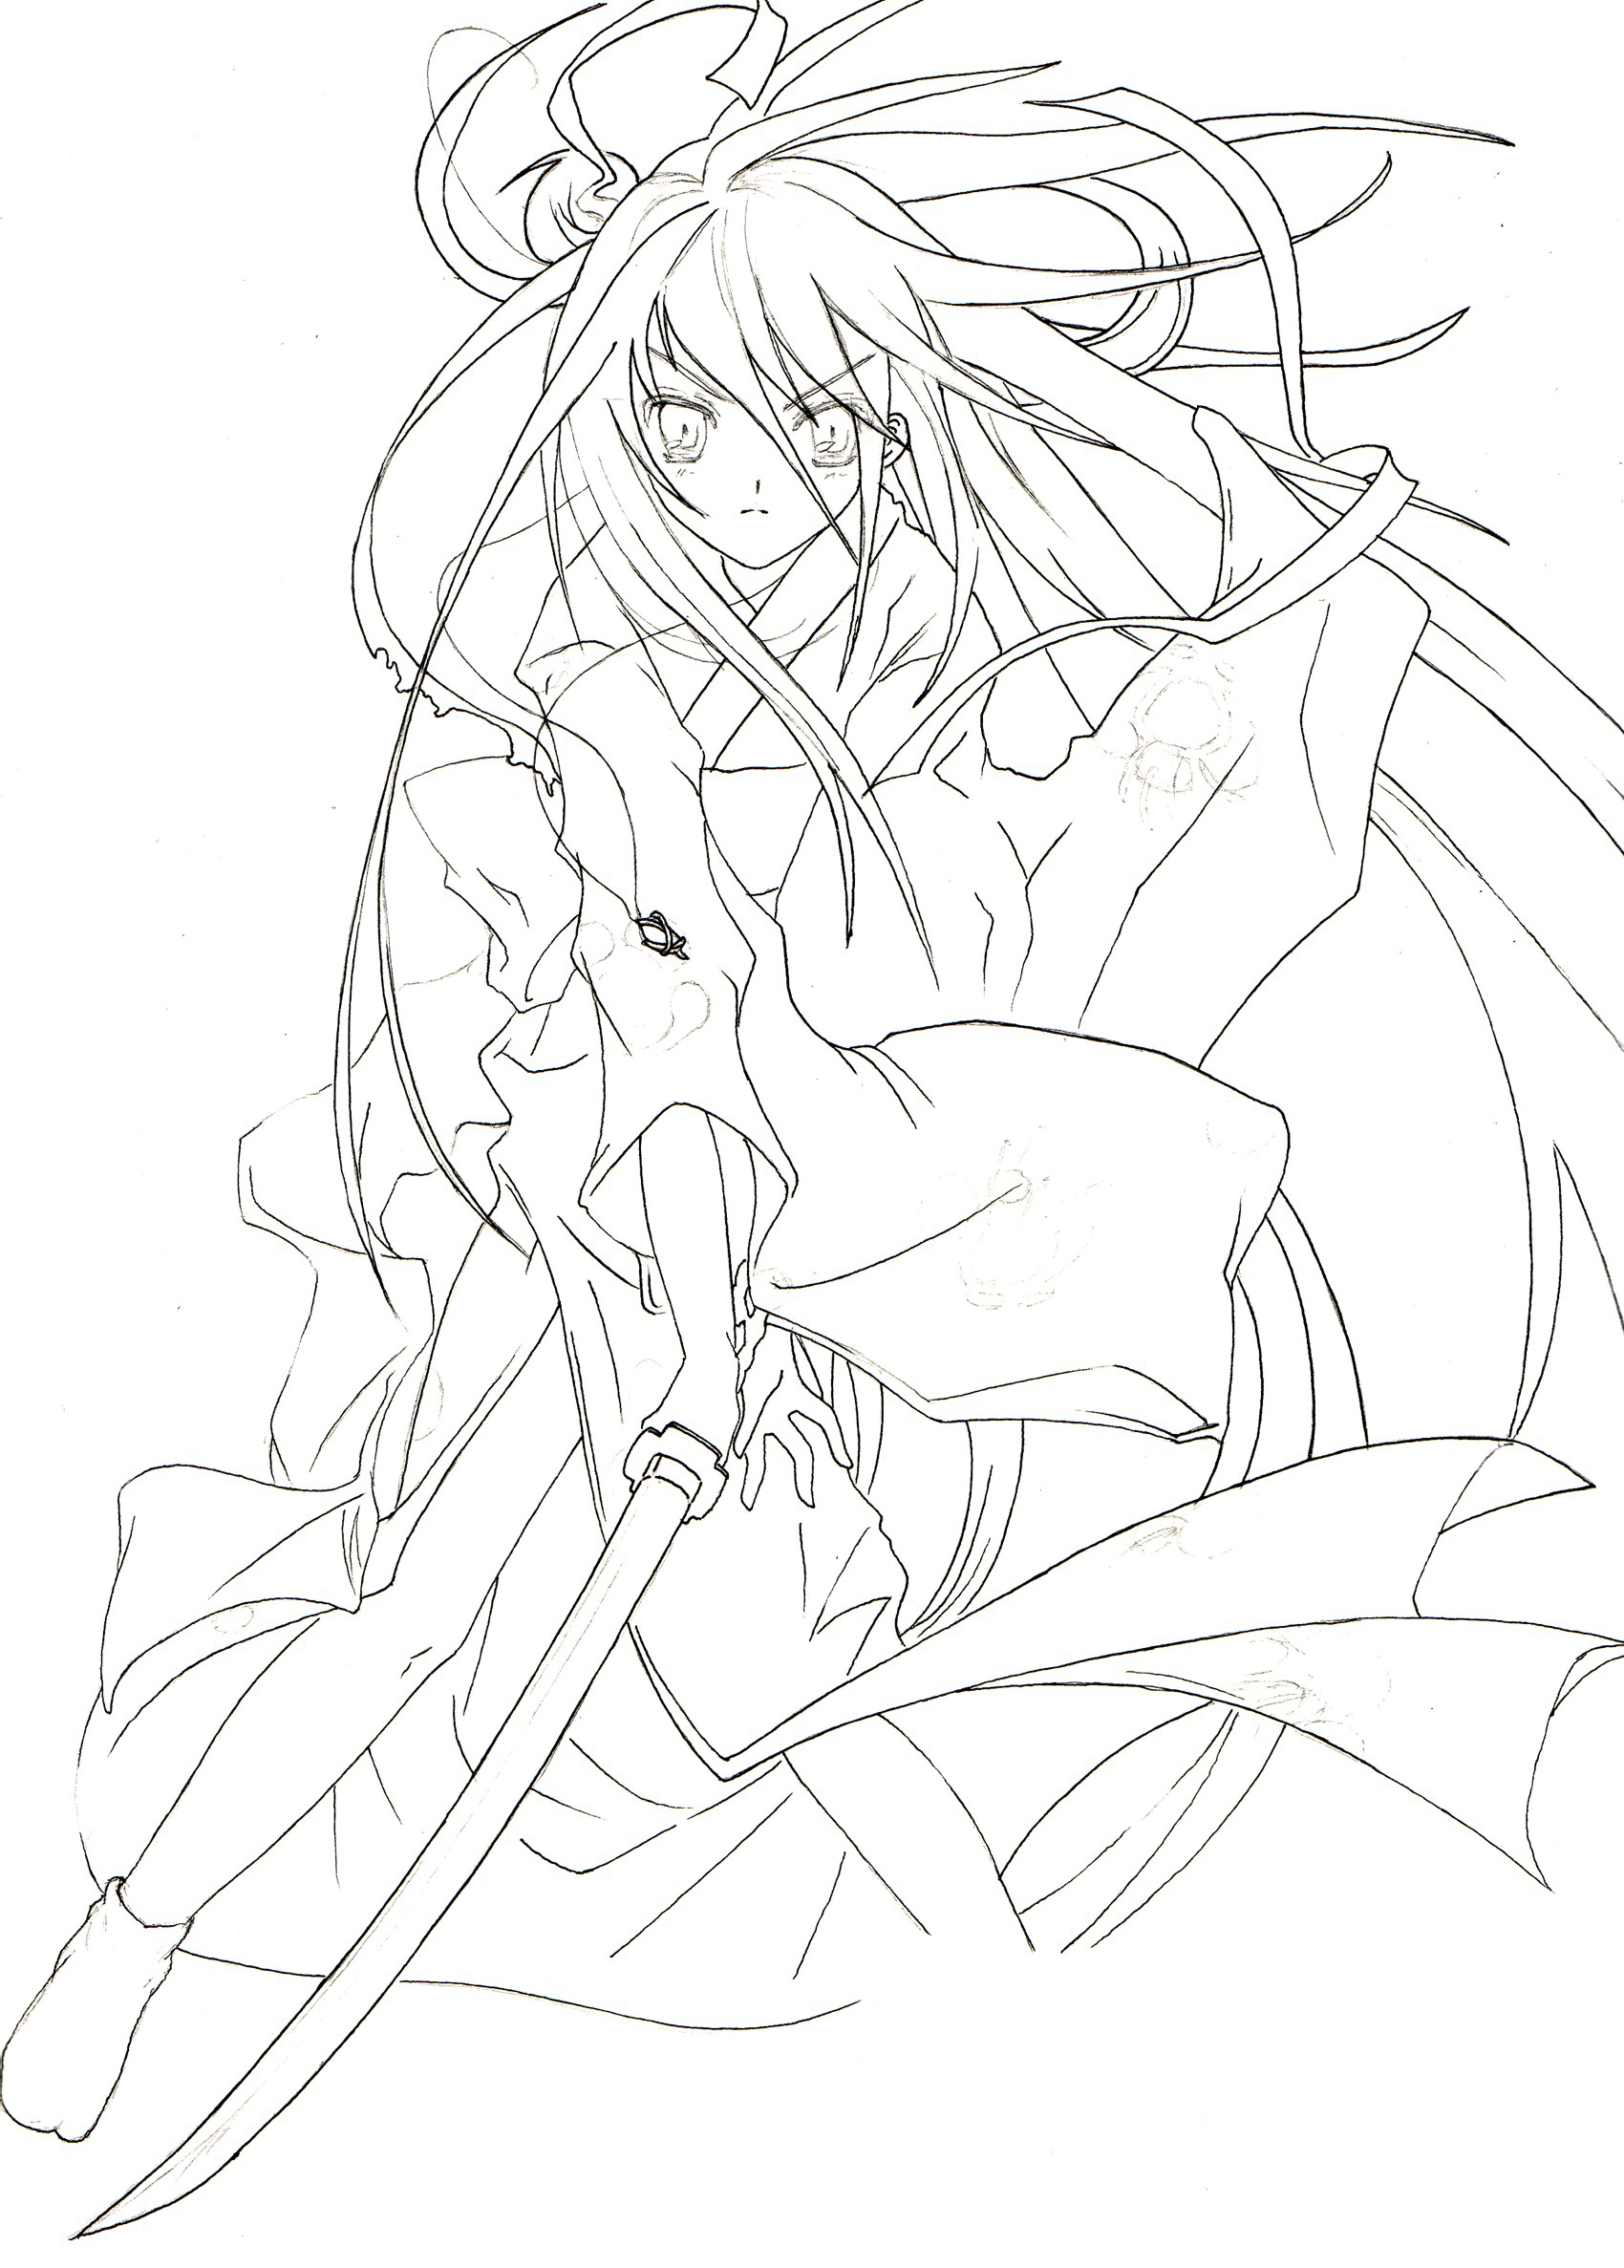 Shakugan No Shana II Coloring Picture 3